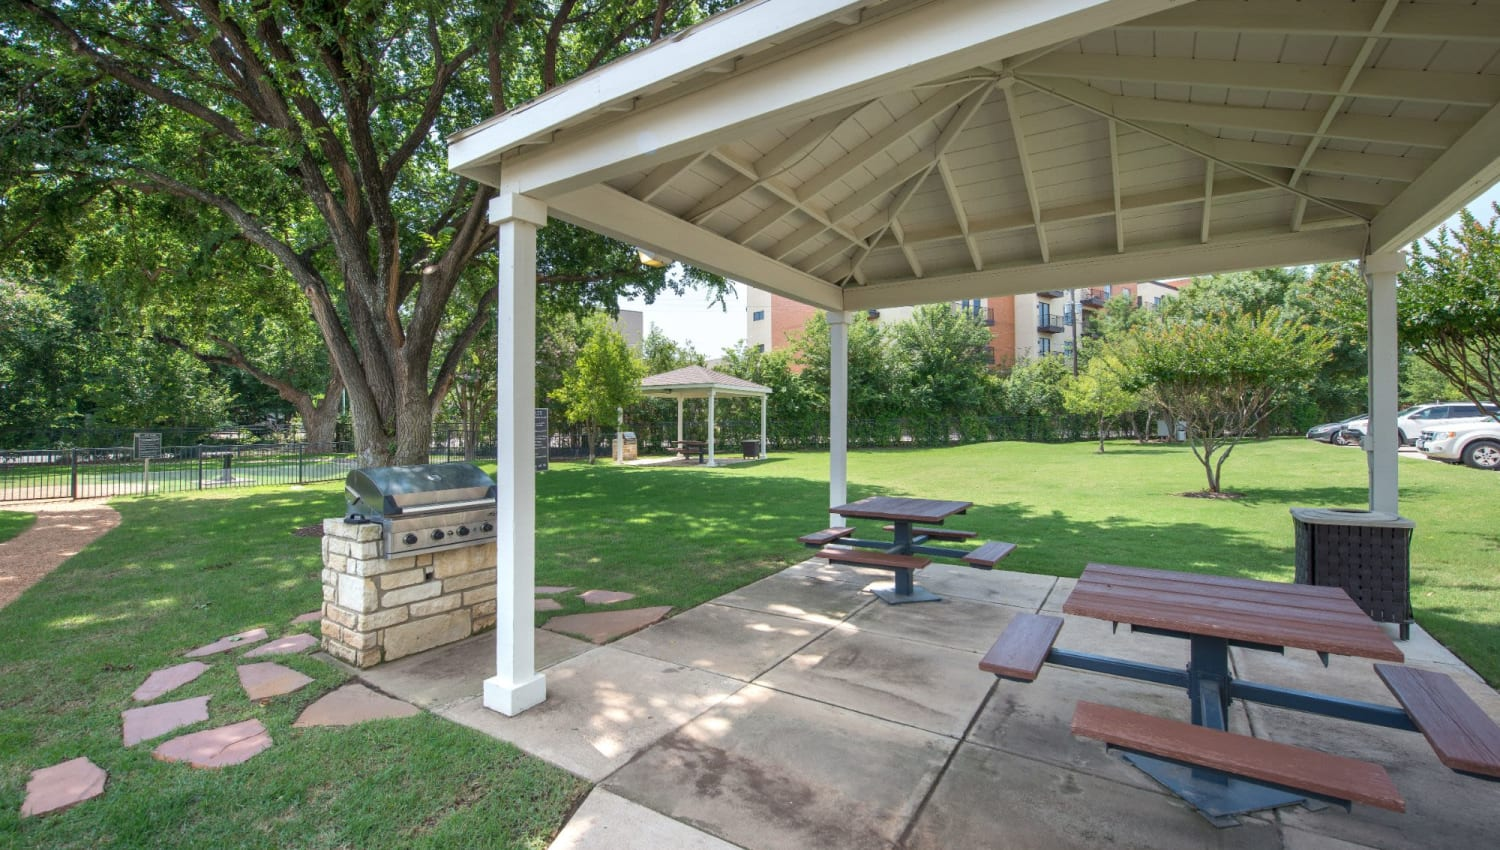 Gazebo and grill at Olympus 7th Street Station in Fort Worth, Texas